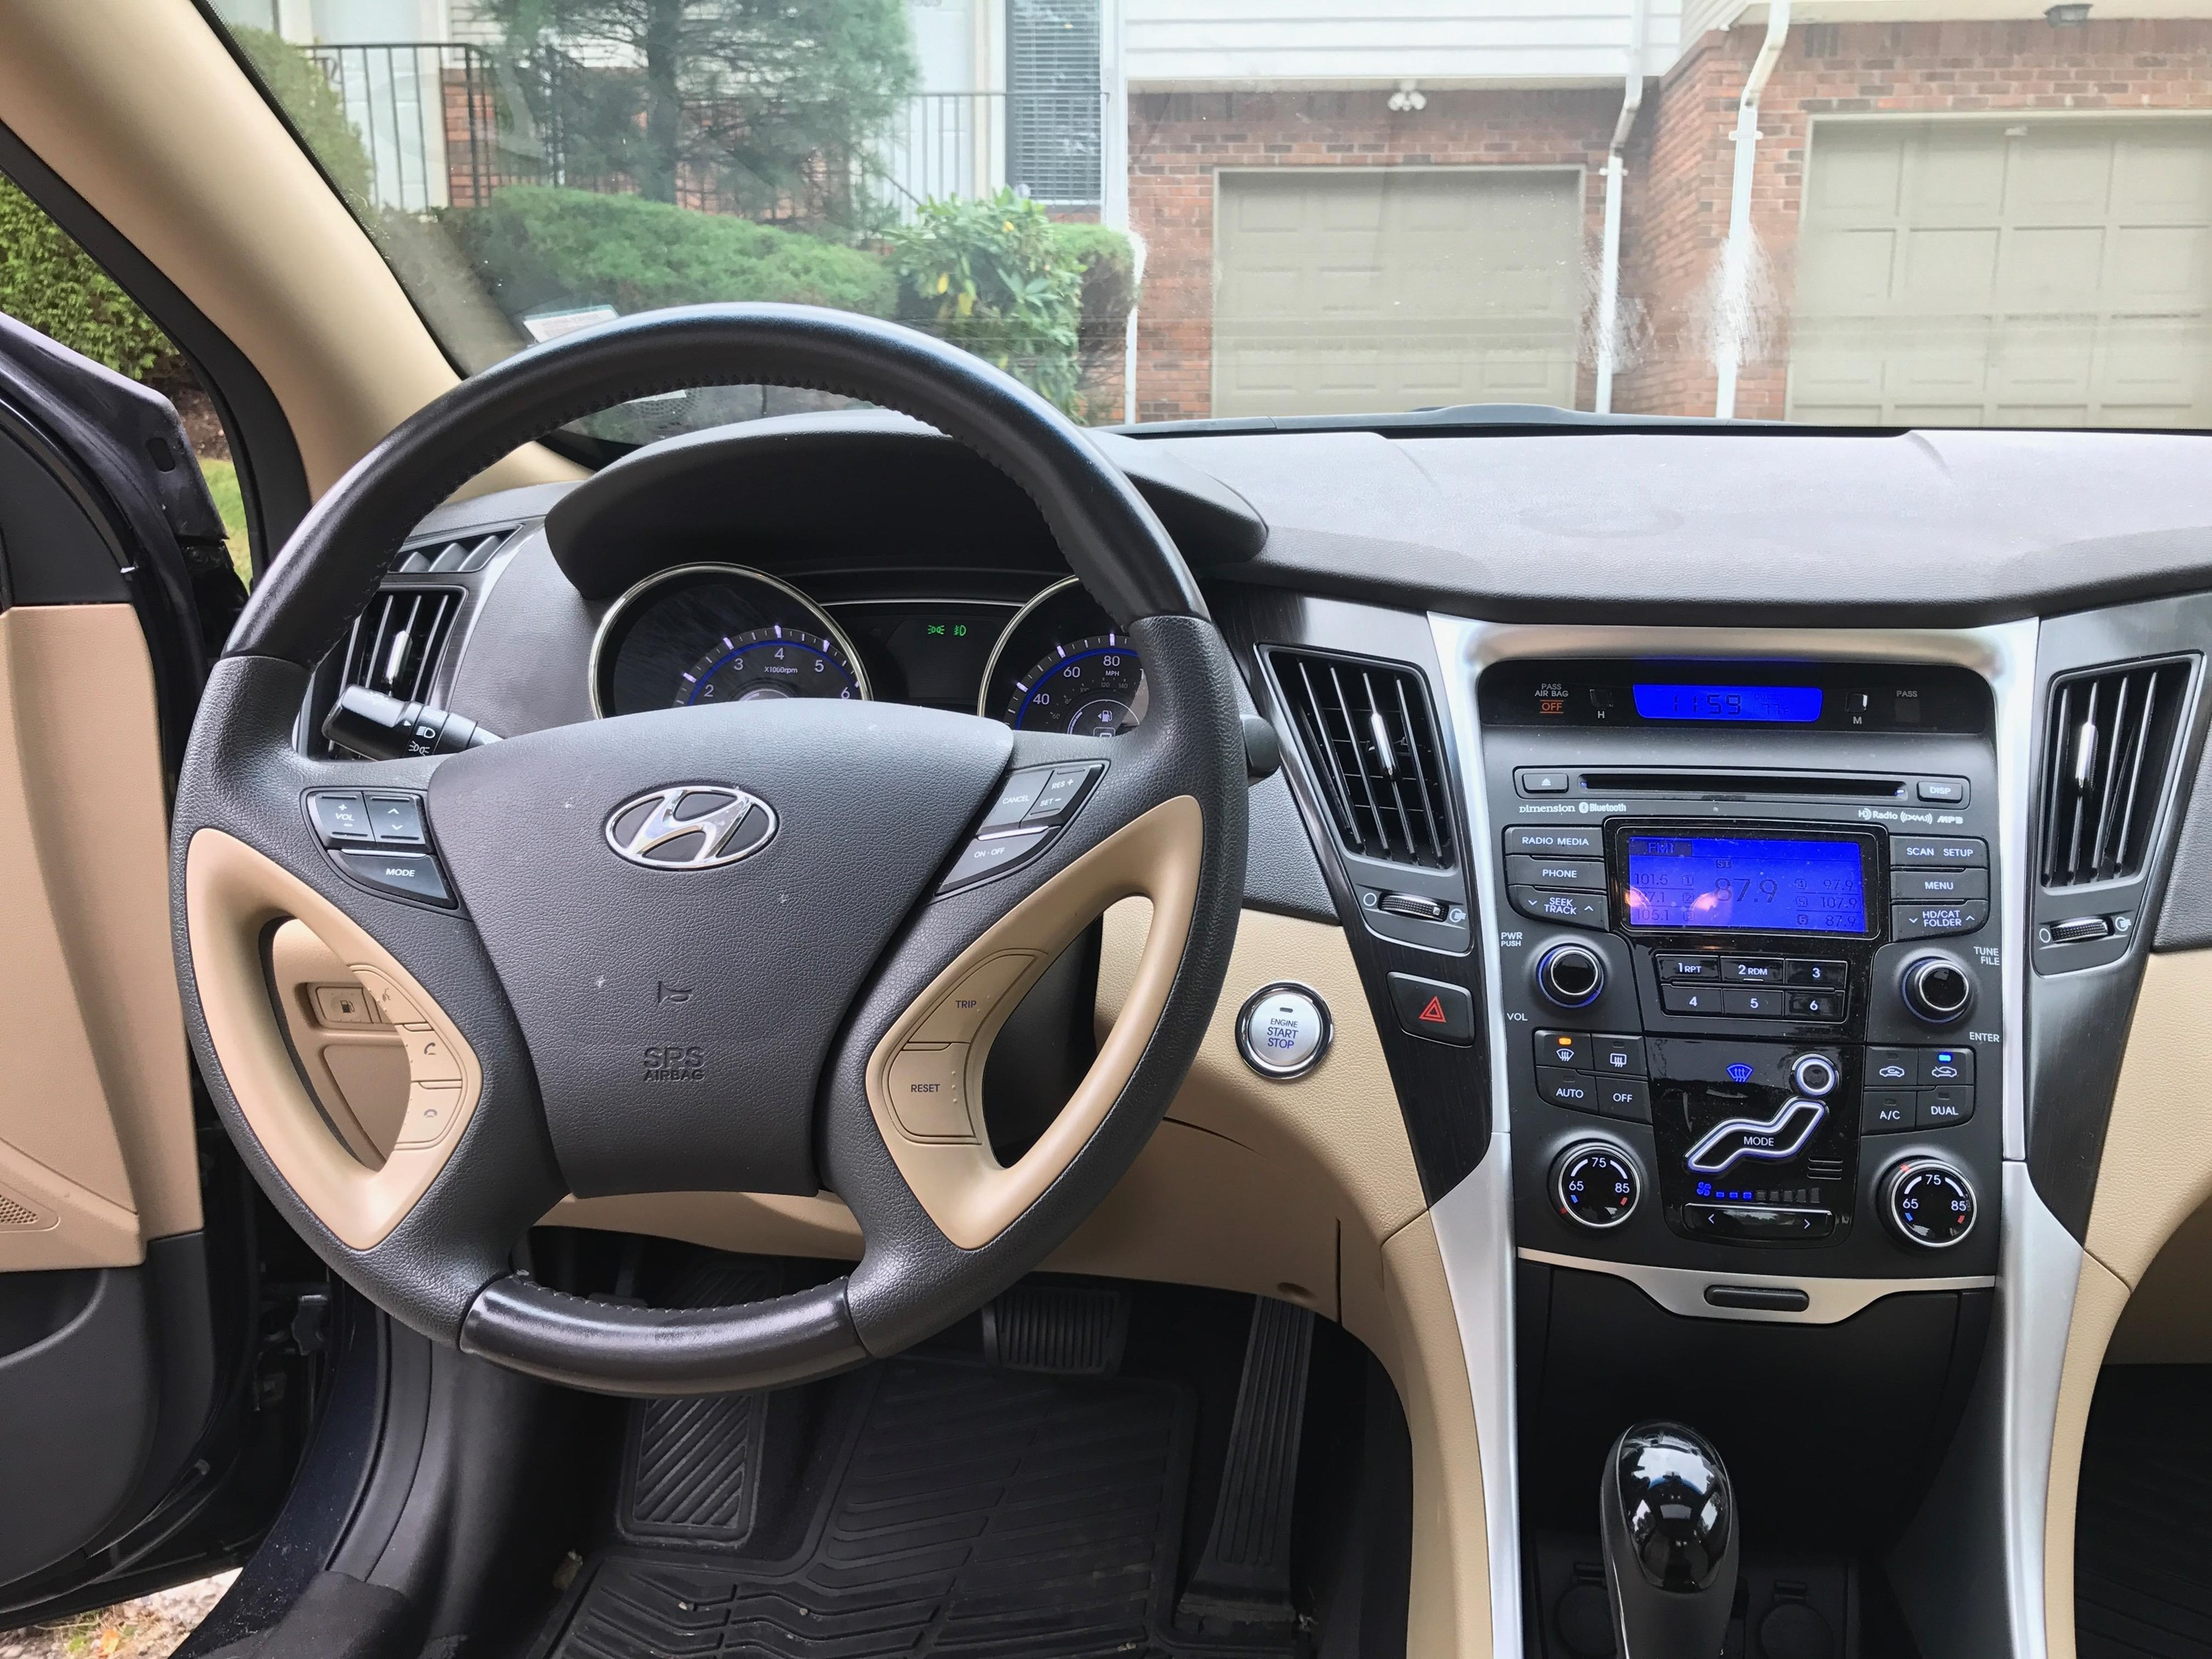 Hyundai Sonata 2013 13.5K Miles. KBB $15K Asking $14.5K Or Best ...